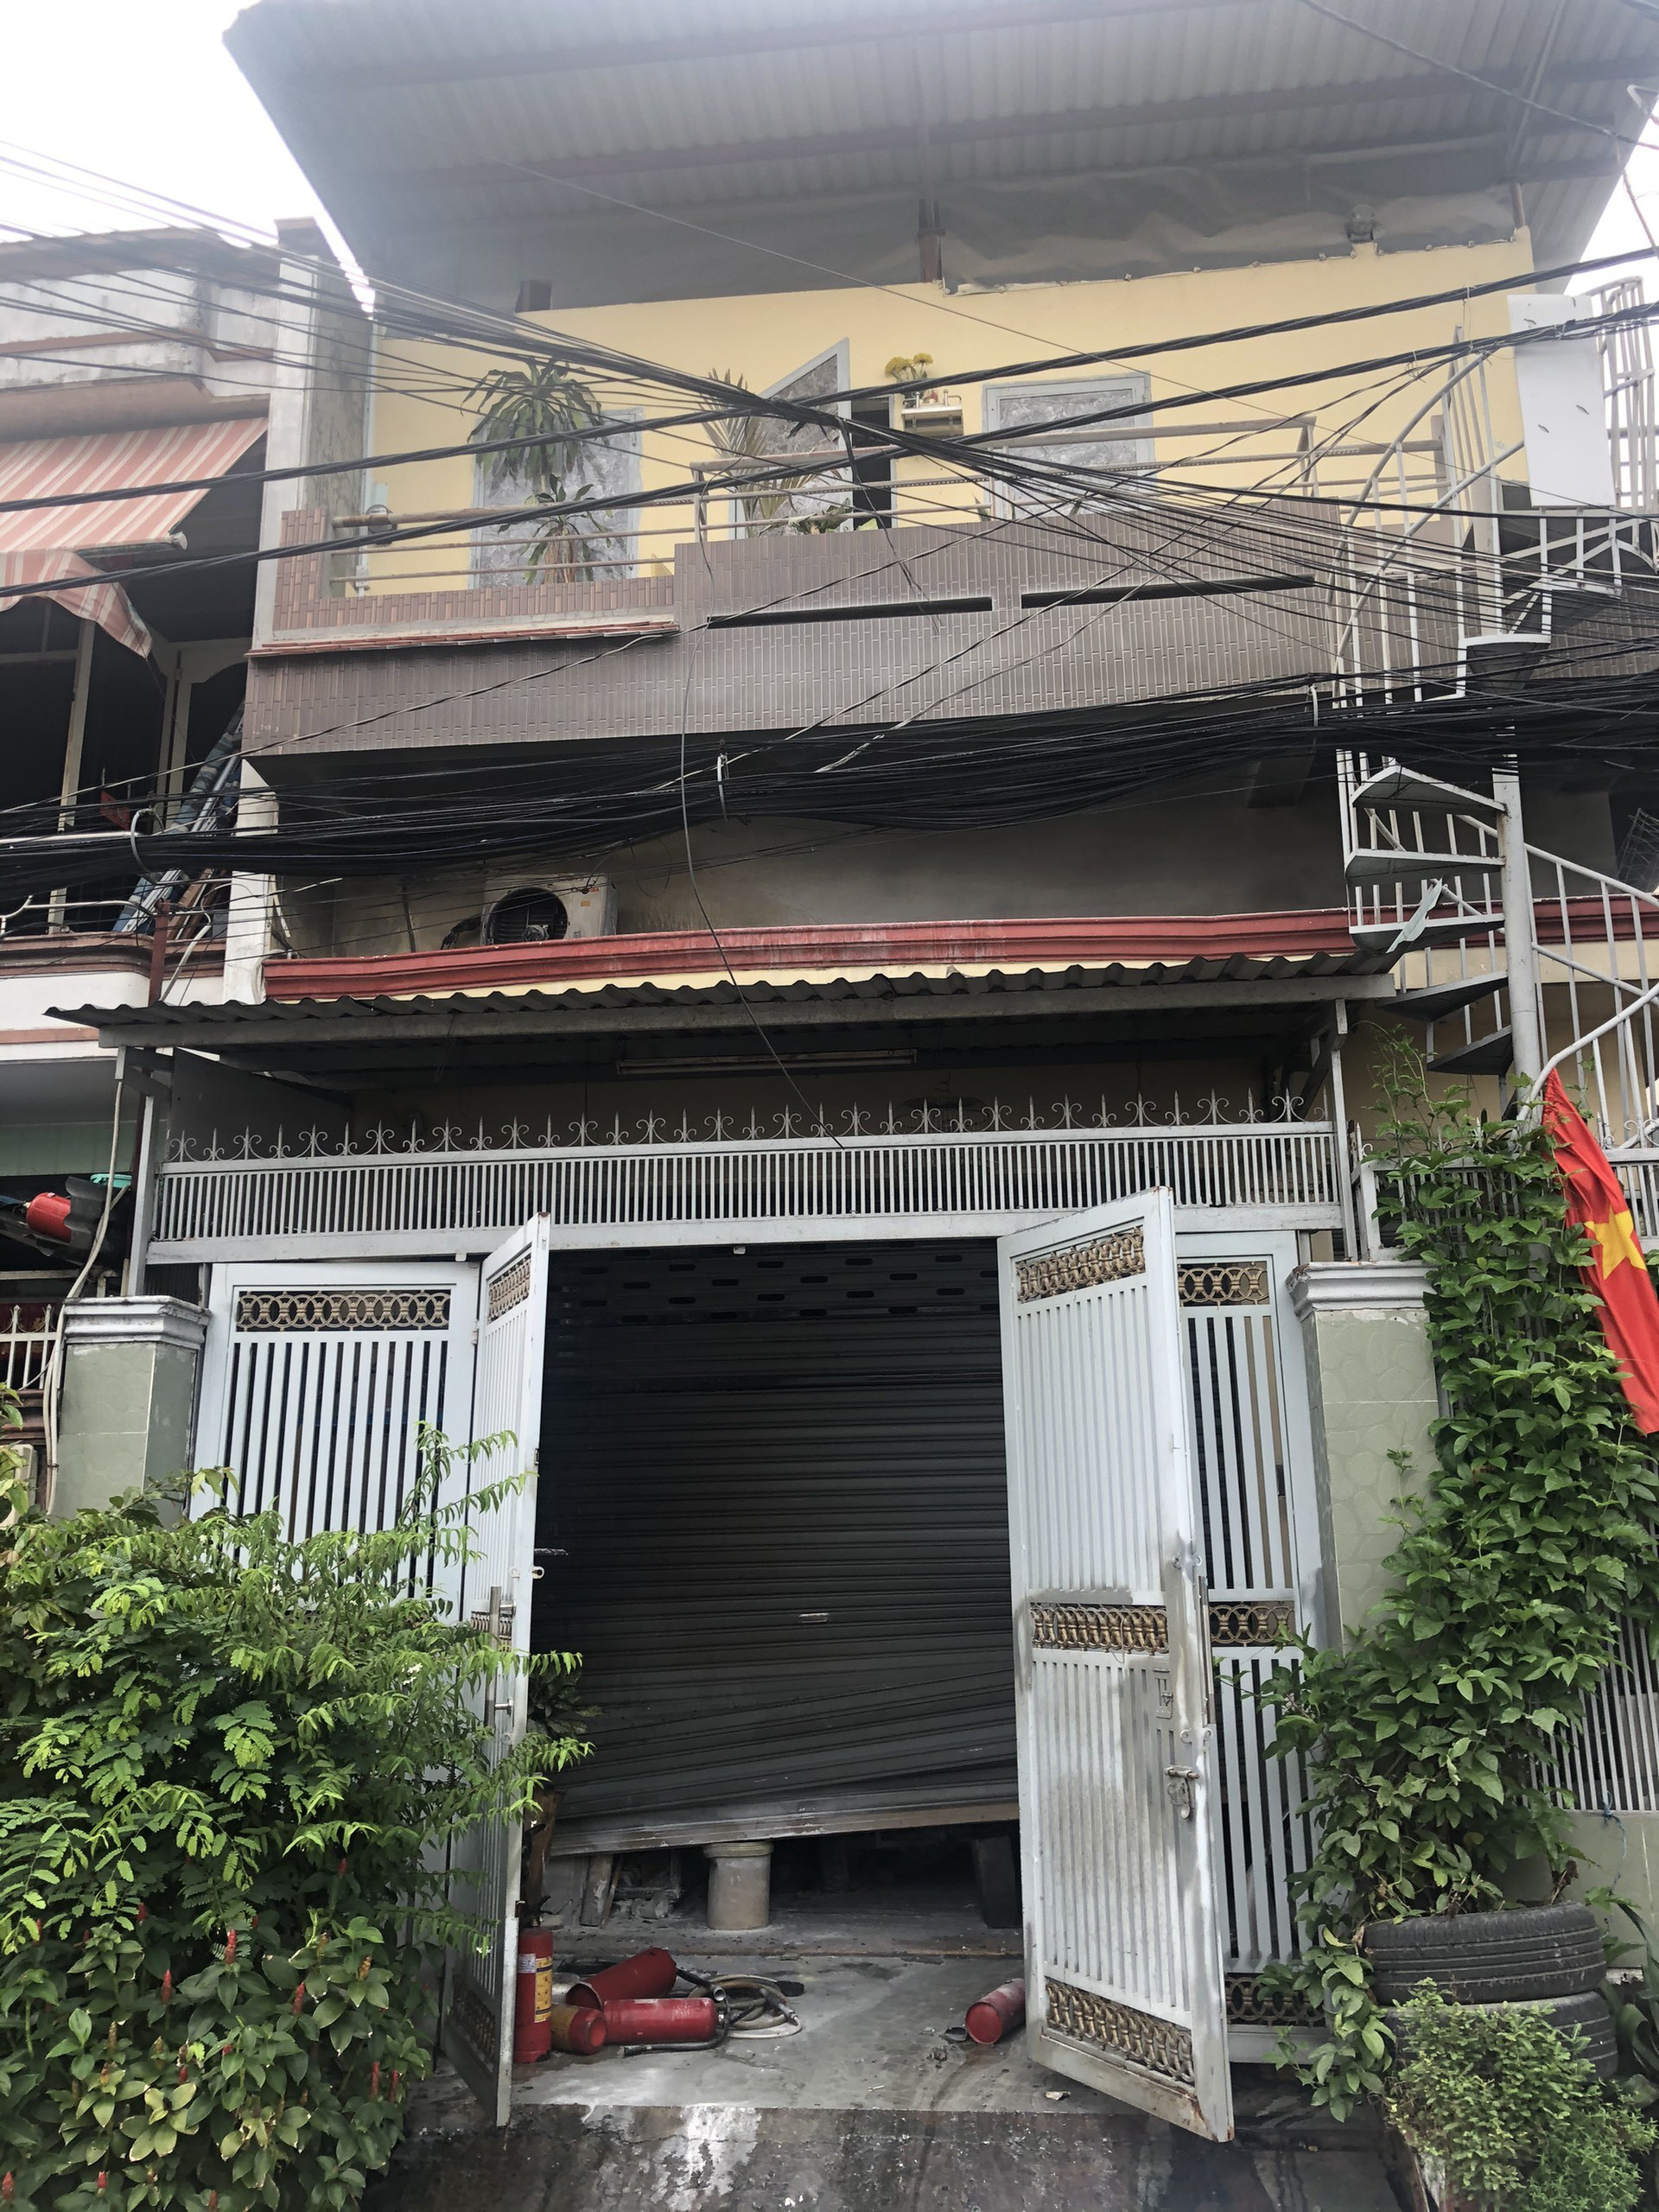 The house is damaged following the fire in Binh Tan District, Ho Chi Minh, September 5, 2021 in this supplied photo.